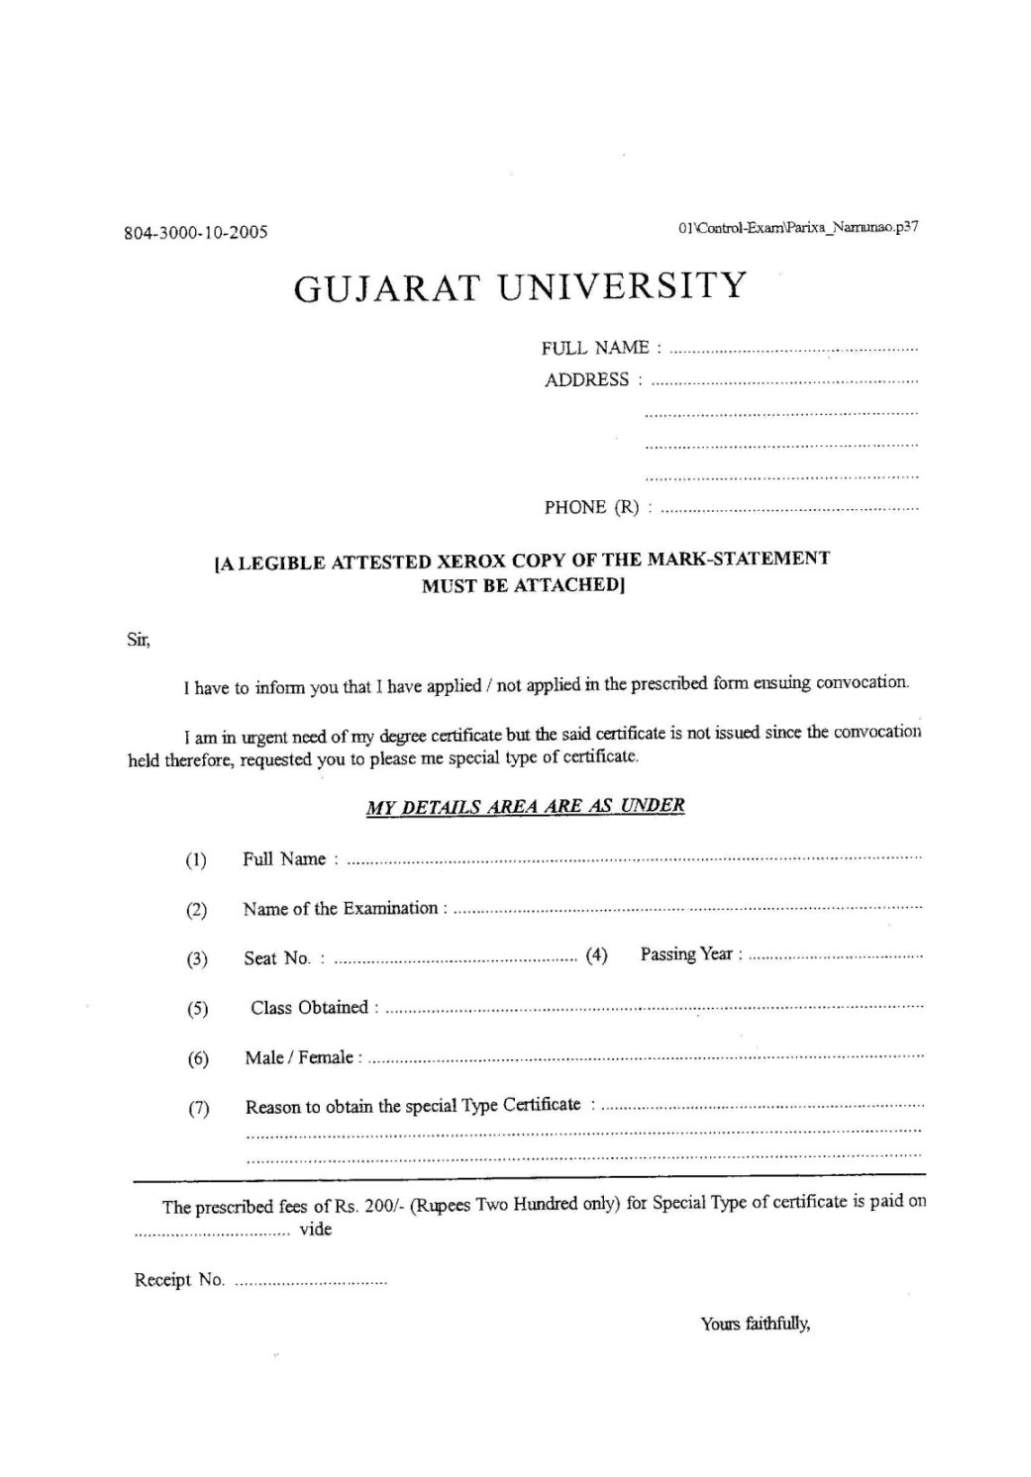 Online degree certificate gujarat university 2018 2019 student forum provisional degree certificate application form contact details gujarat university navrangpura area near l d engineering college ahmedabad yelopaper Image collections